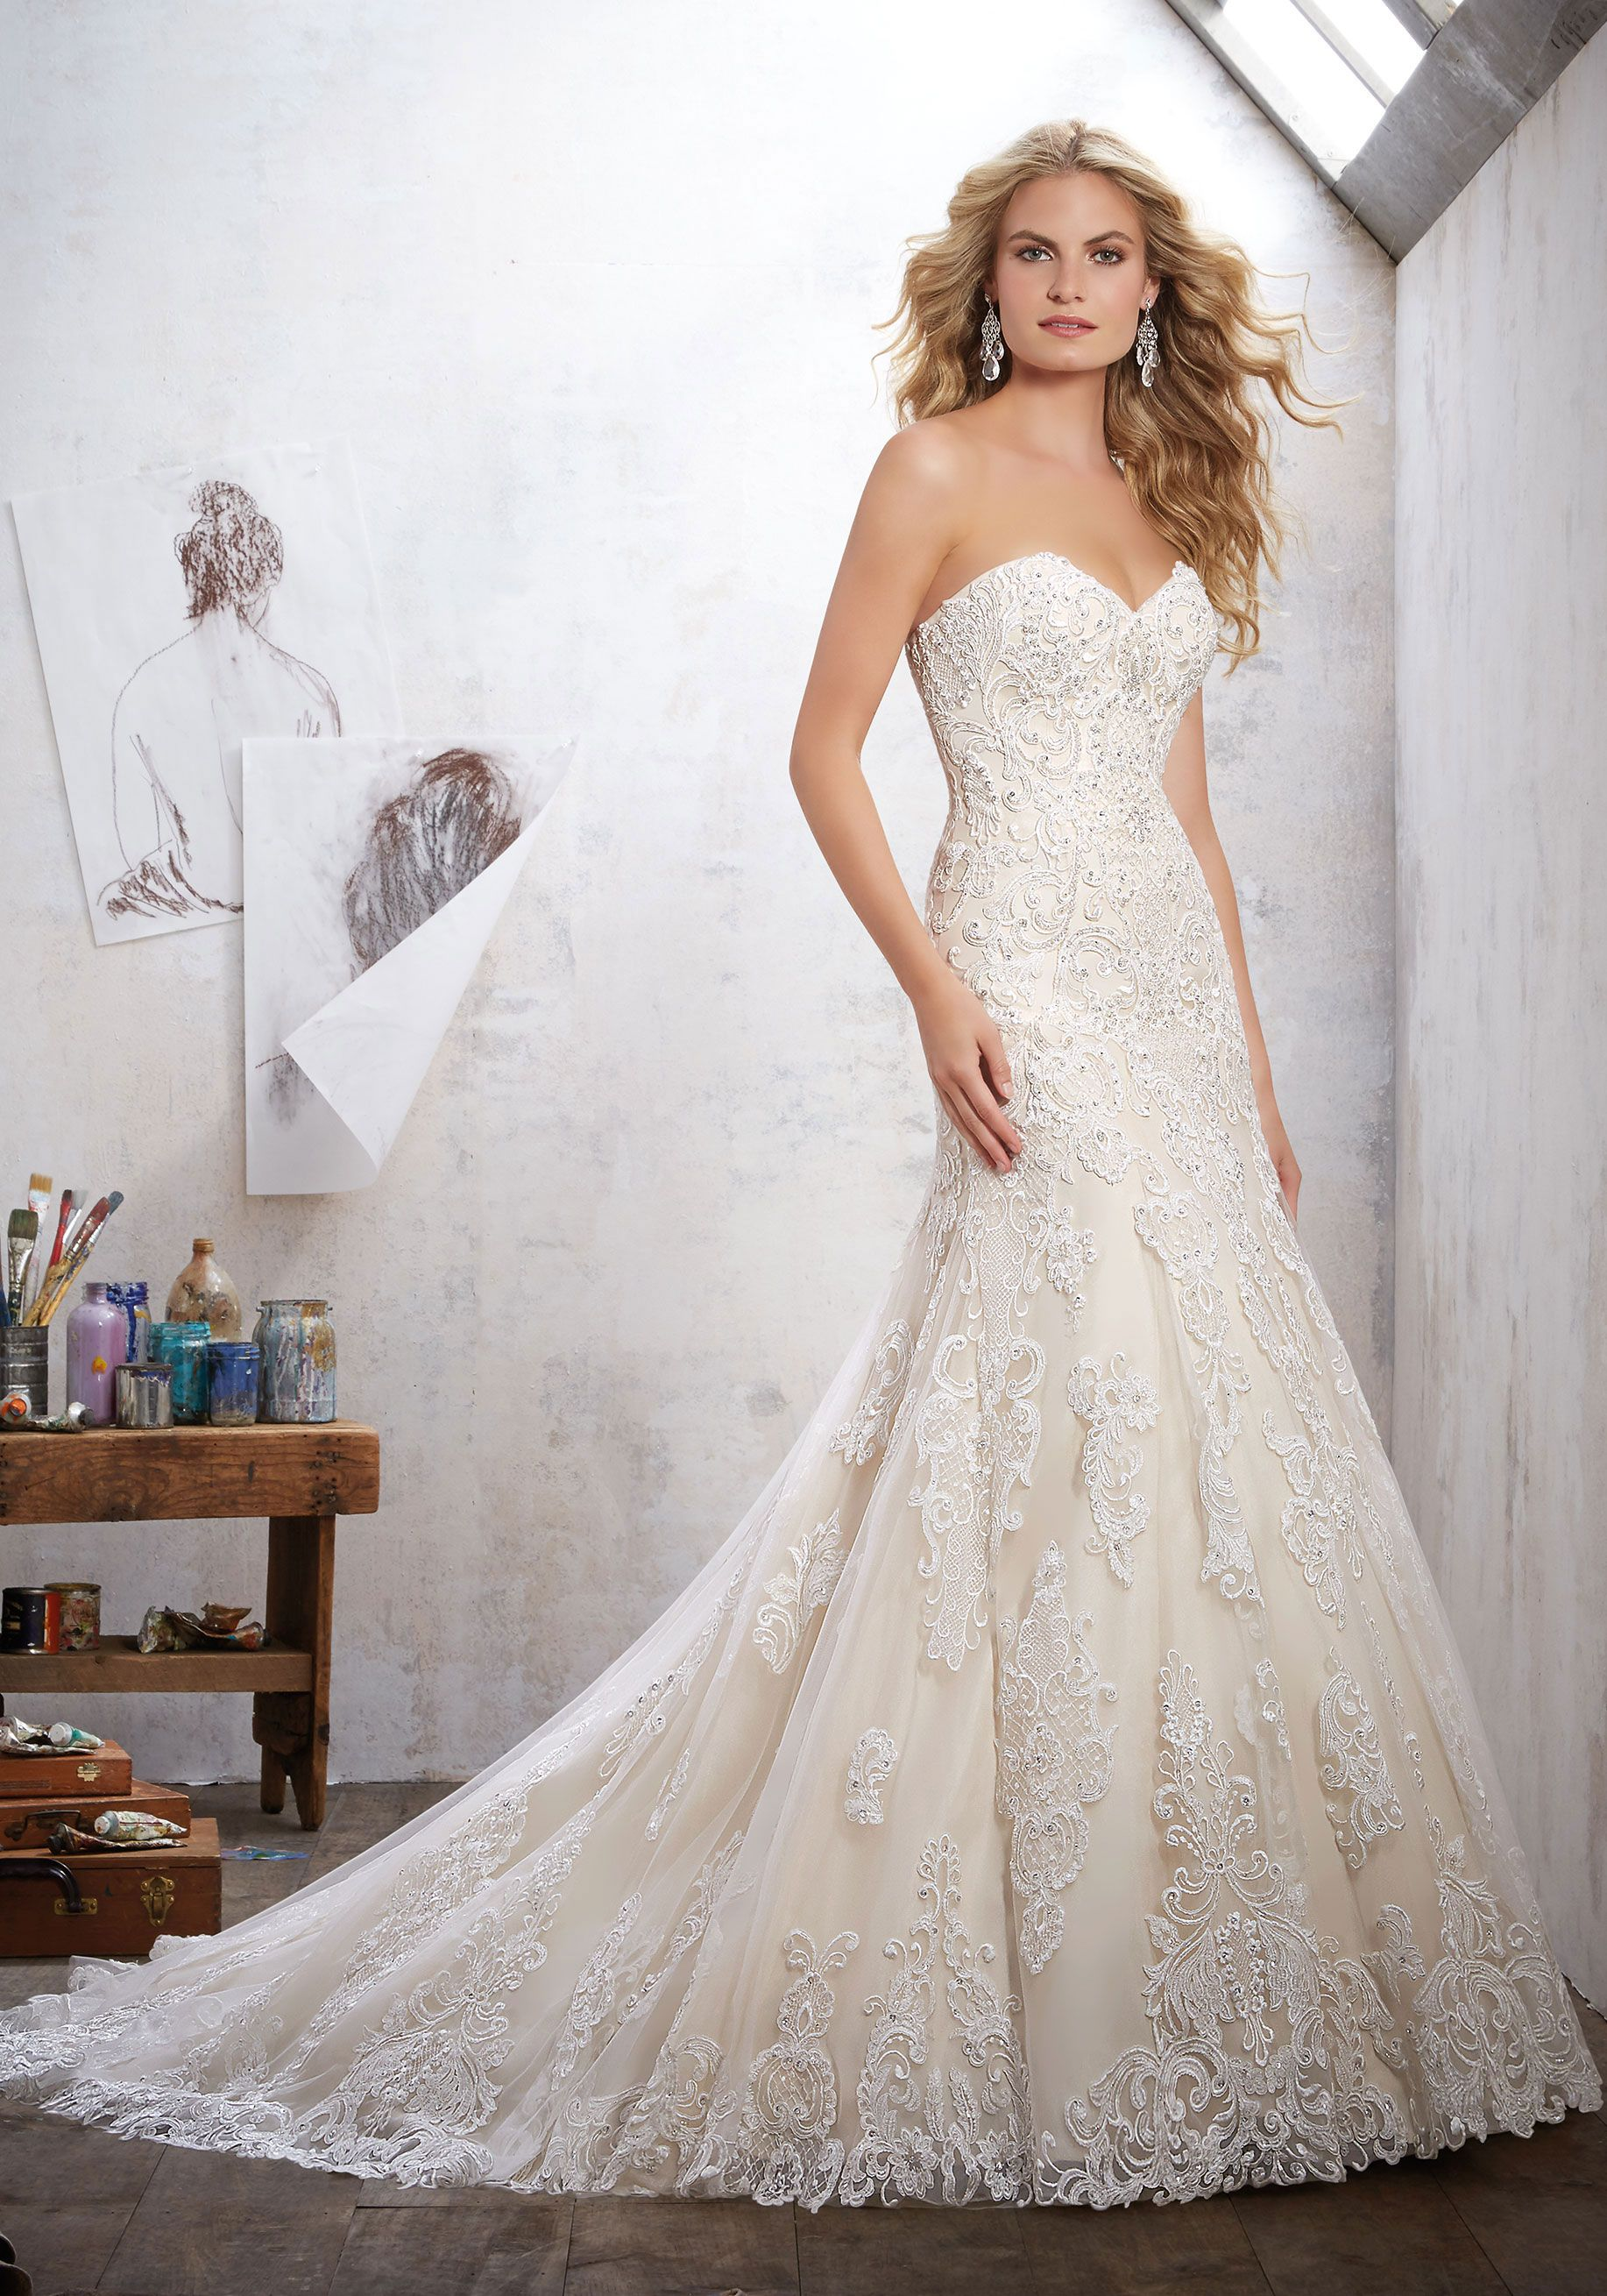 Strapless Bridal Gown featuring a Sweetheart Neckline and Beaded ...